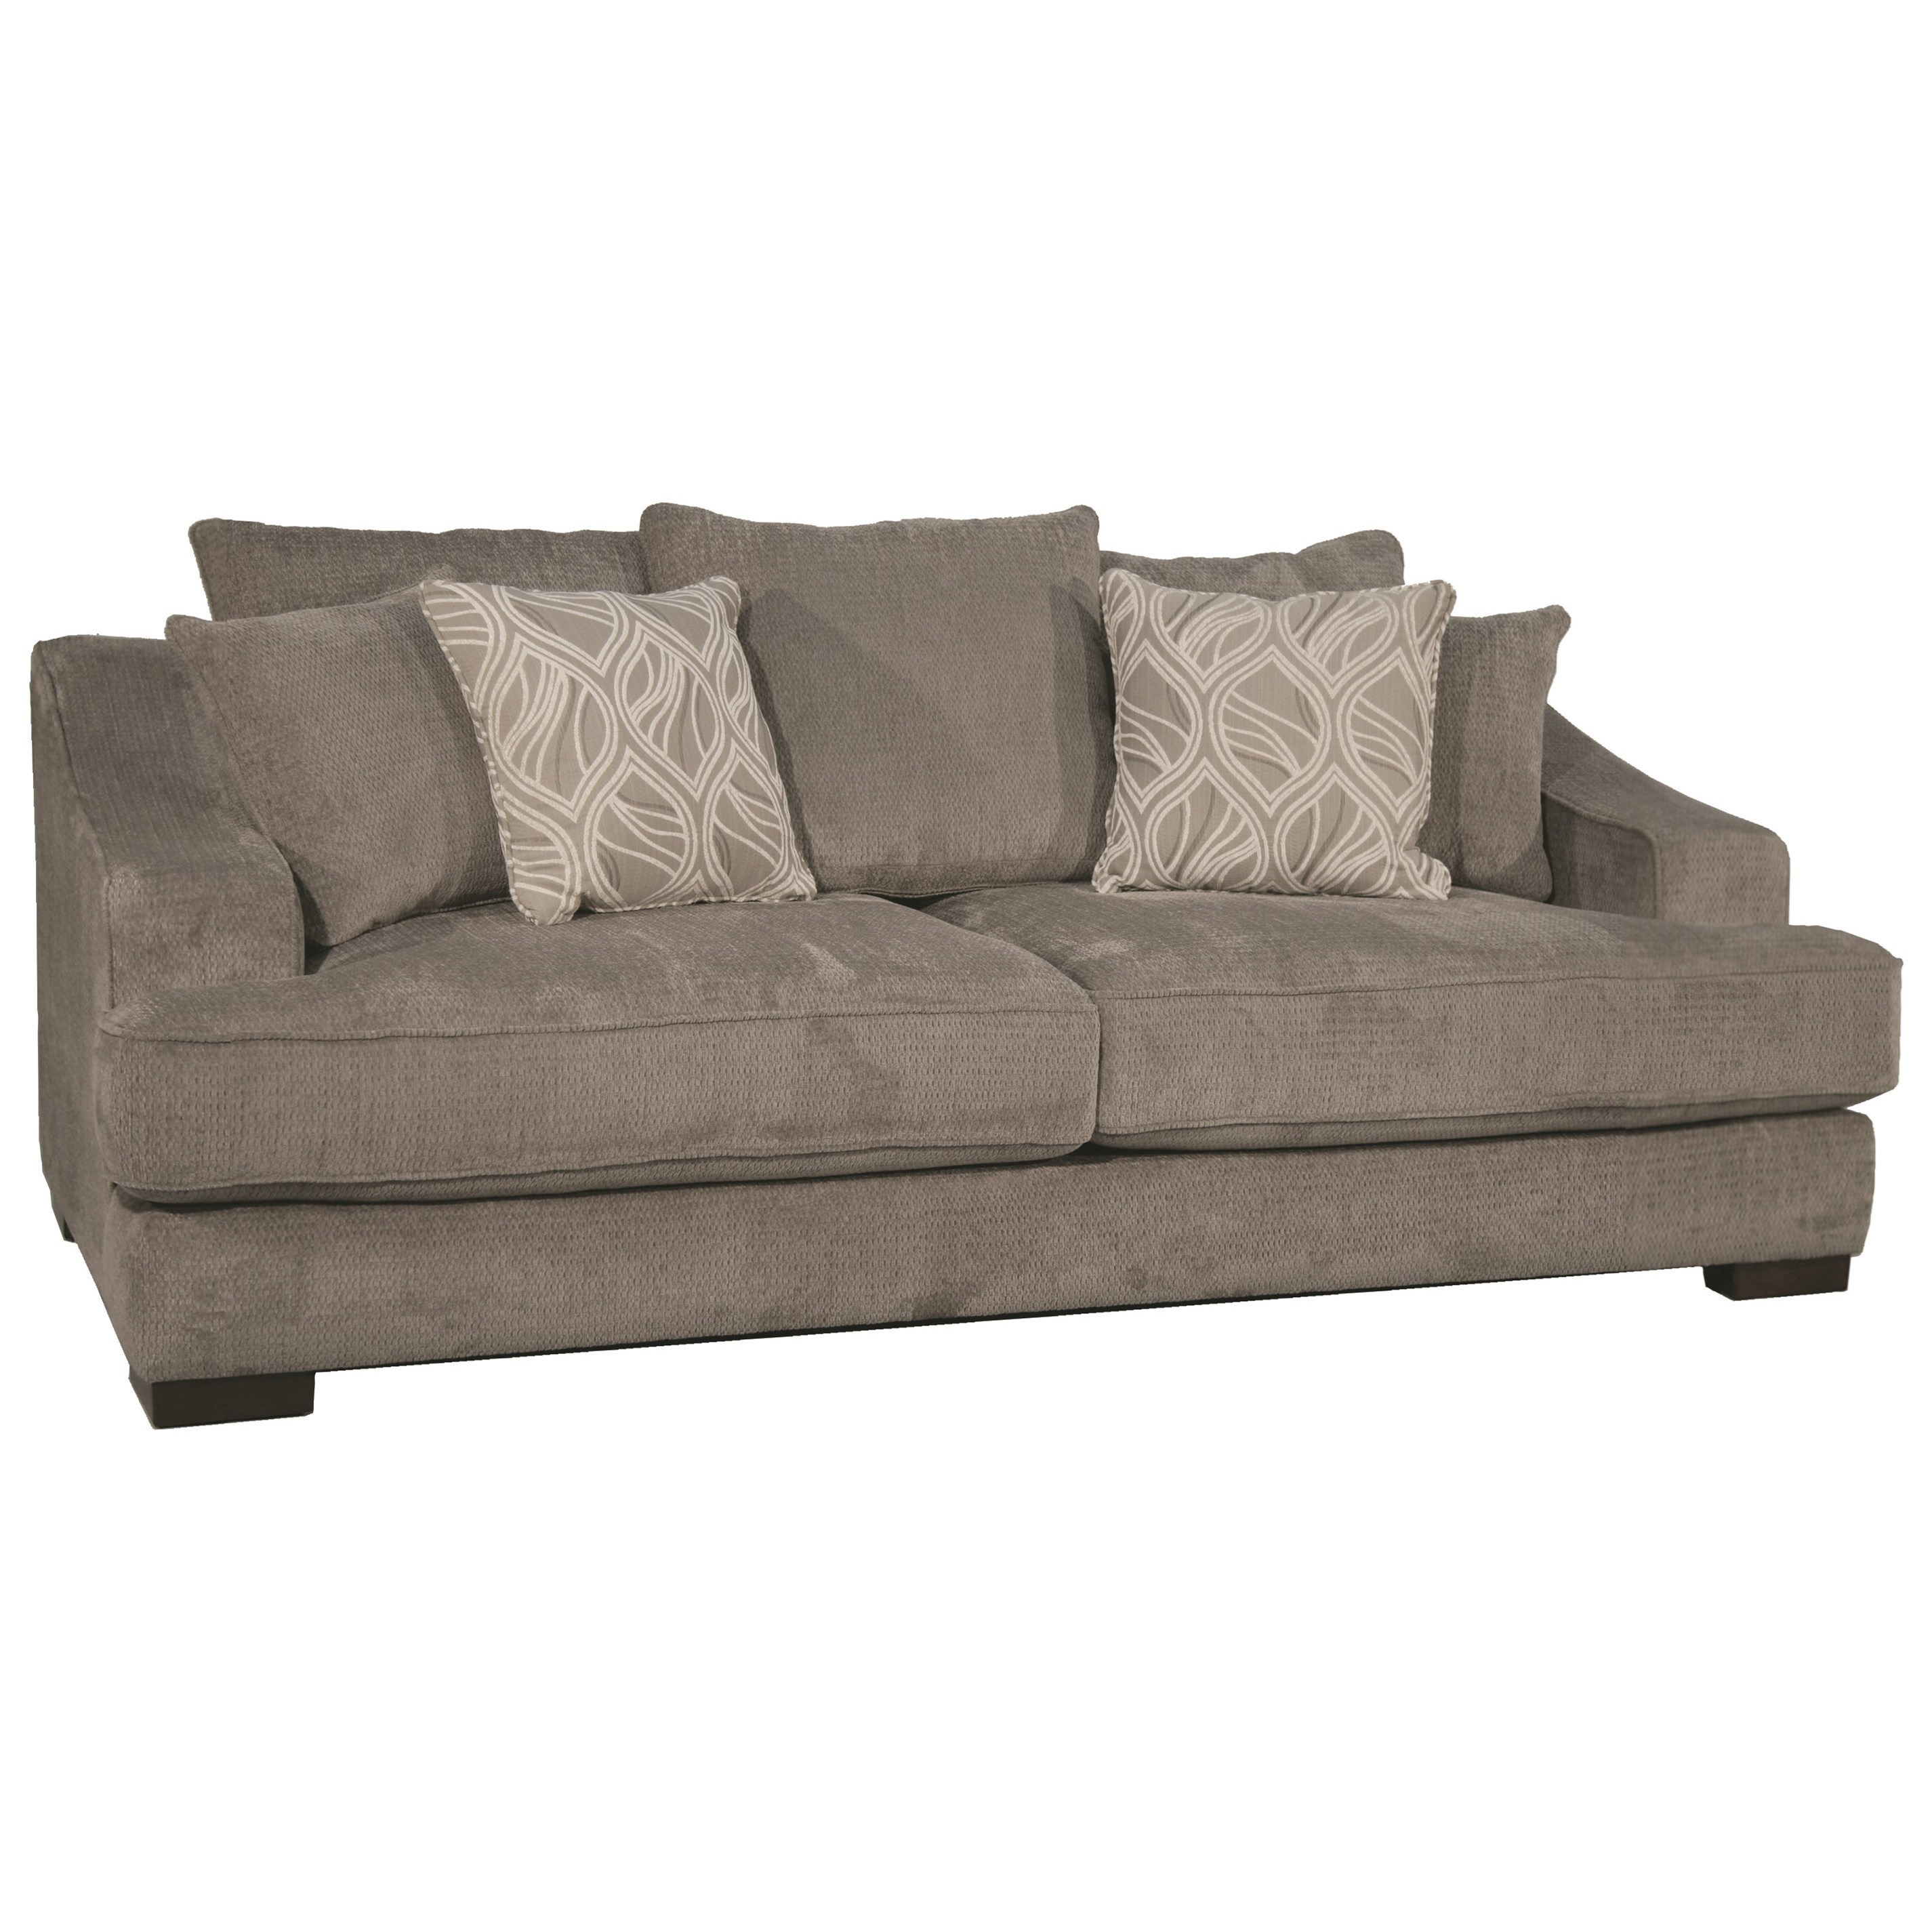 Avalon Casual 2-Seater Deep Sofa by Fairmont Designs